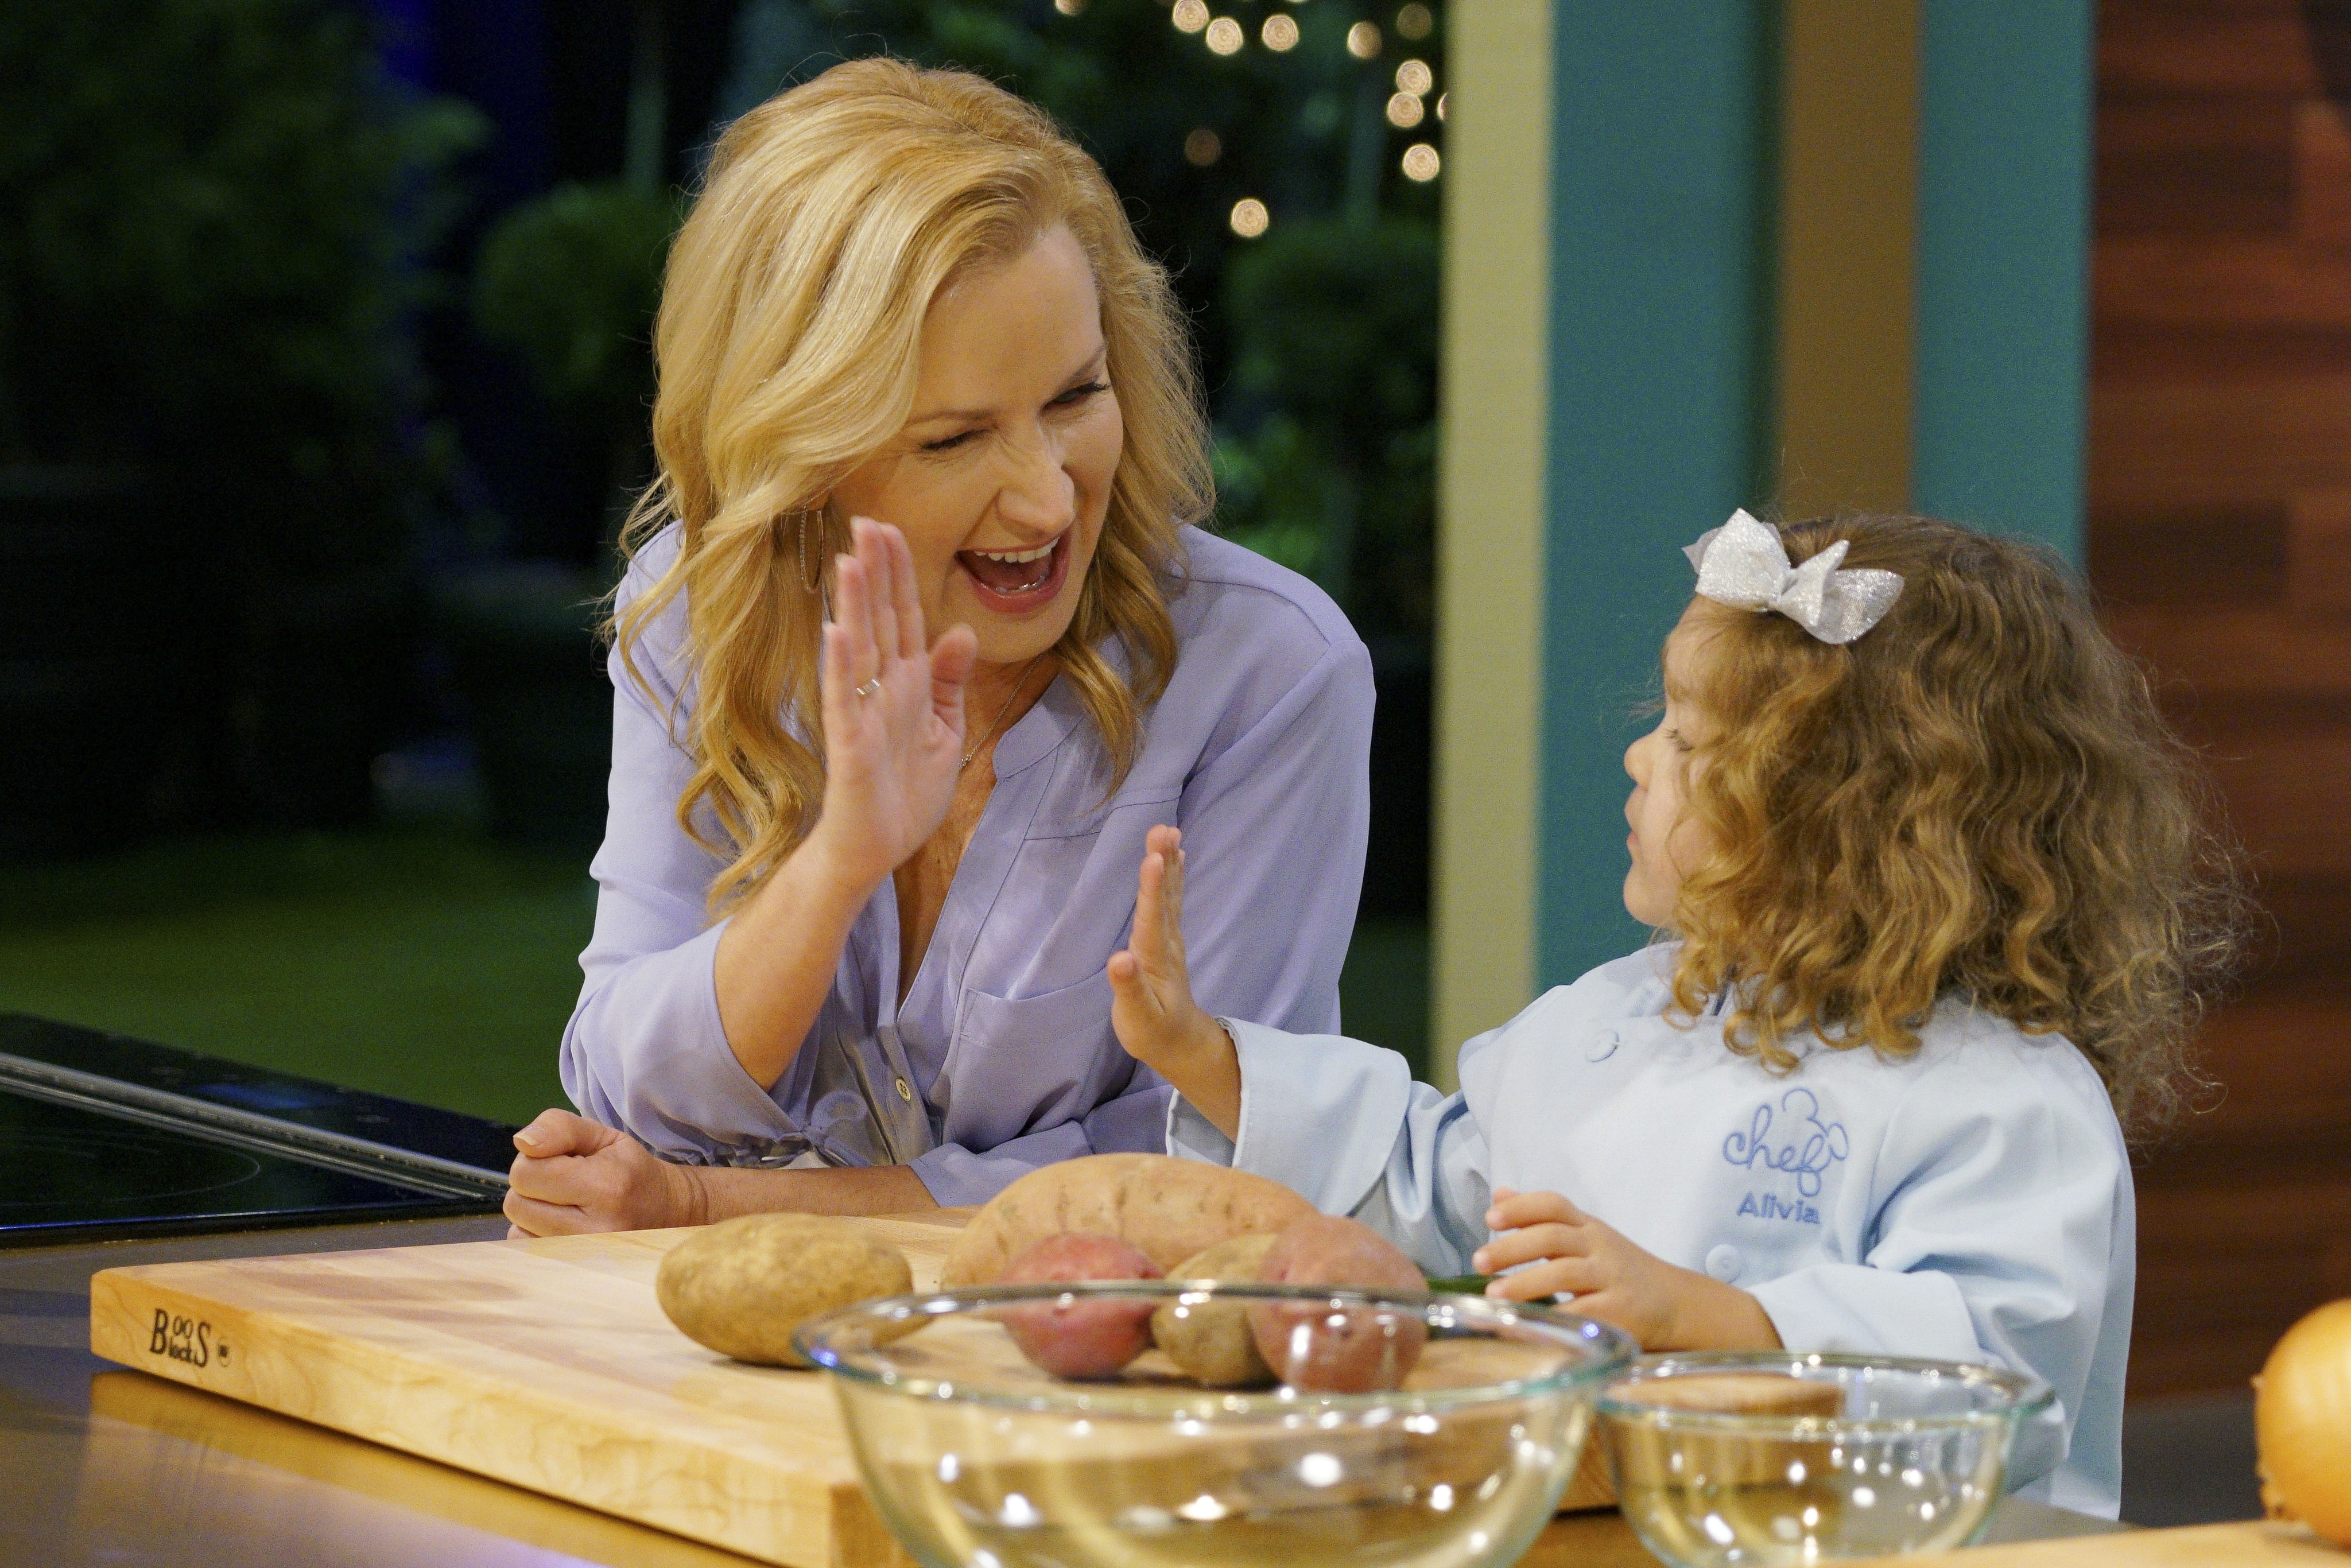 Angela Kinsey high-fiving a small child.